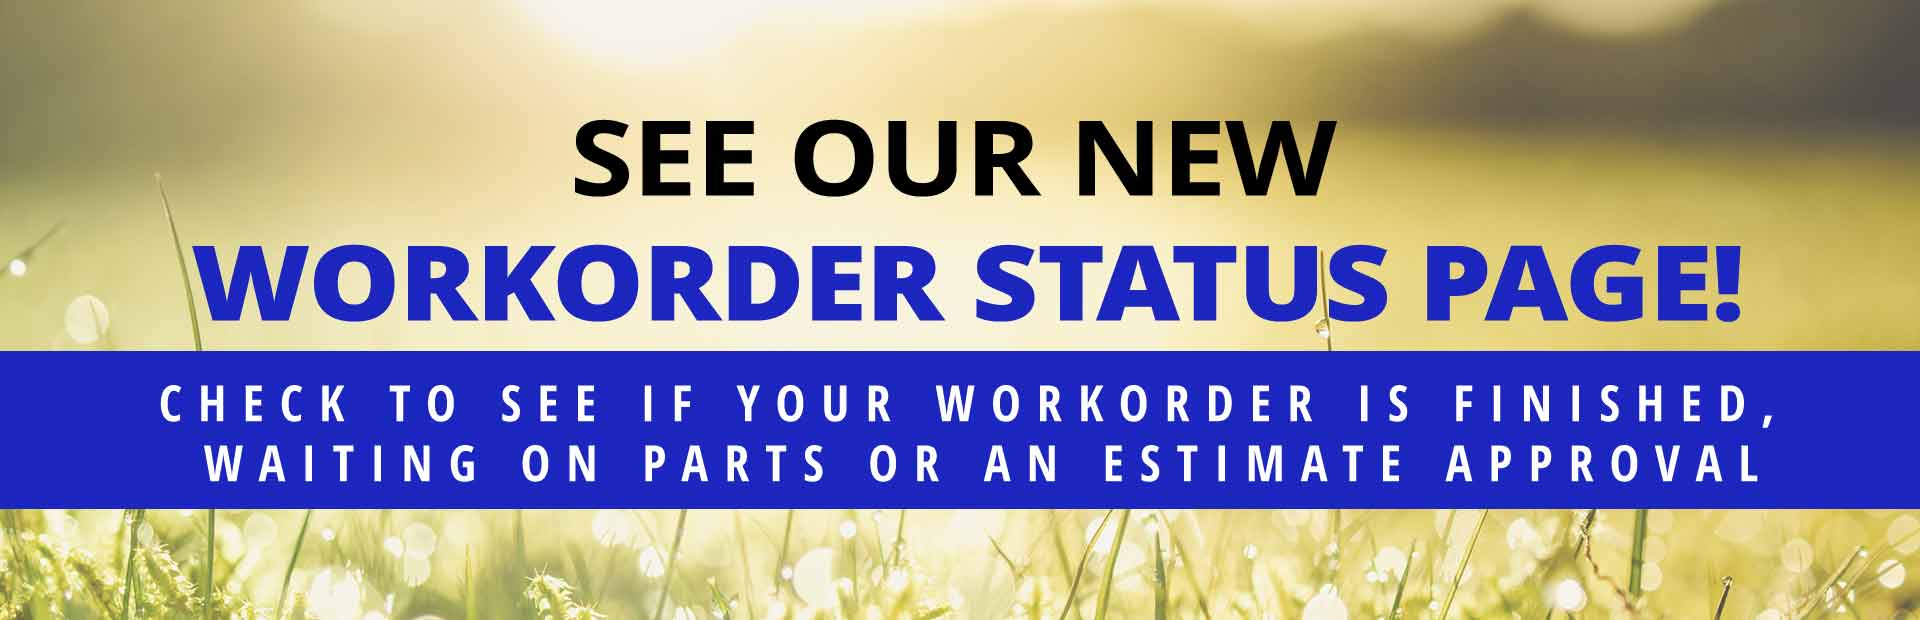 Check to see if your workorder is finished, waiting on parts or an estimate approval. Click here now